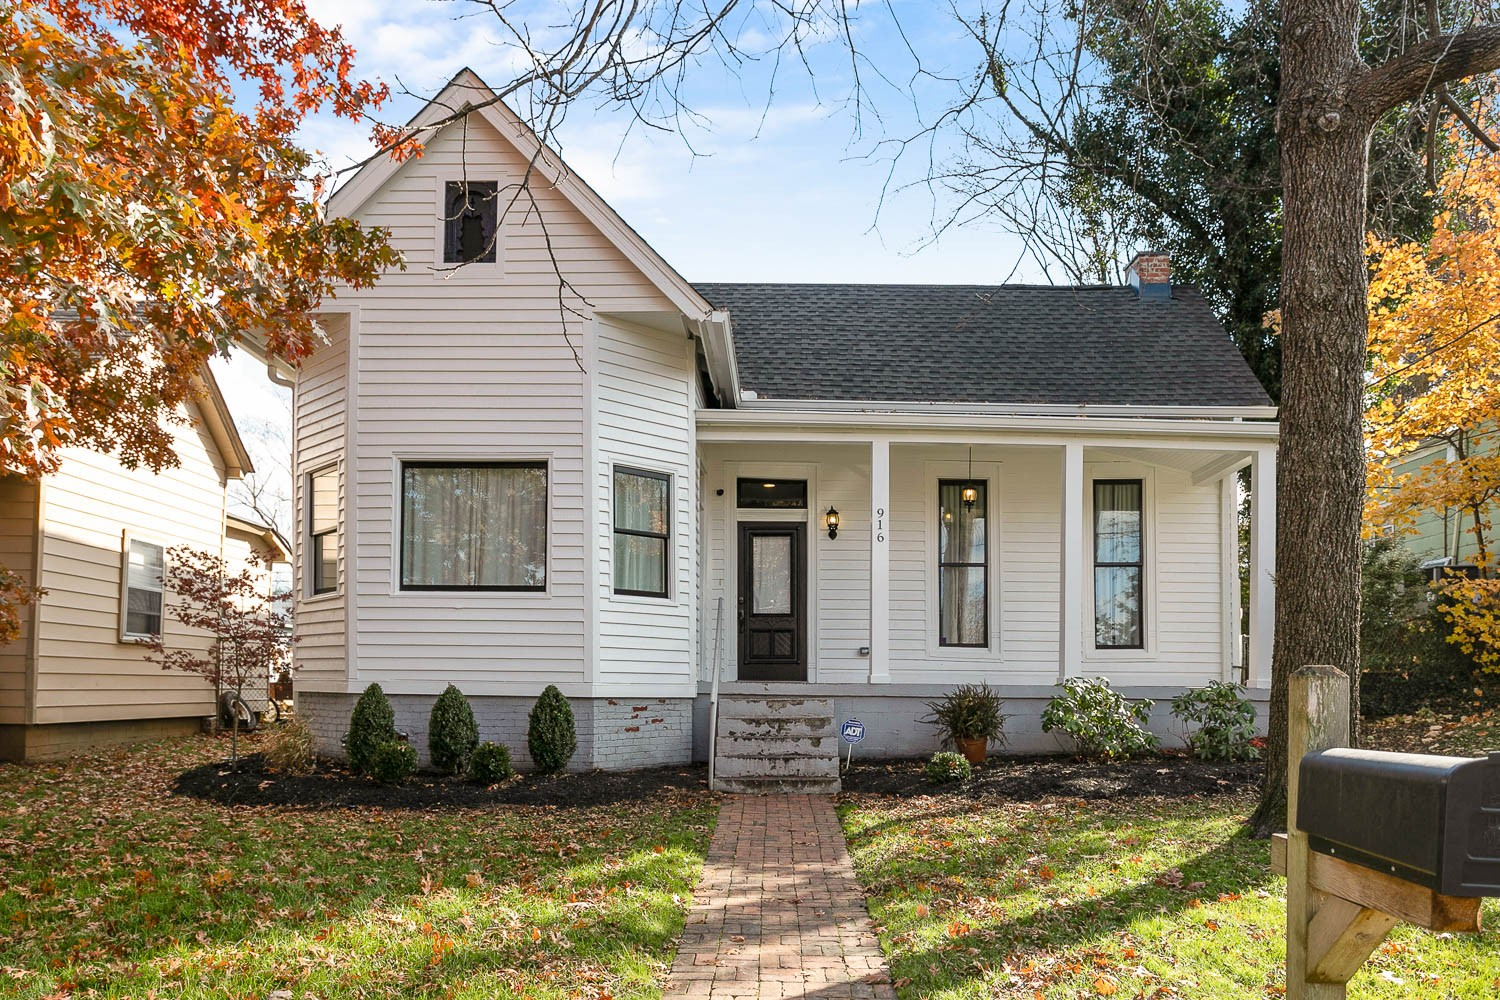 This beautifully renovated victorian home, located in the desirable Historic Edgefield neighborhood, is just a 10 minute walk to 5 Points where you can enjoy an abundance of eateries, hangouts, and local shops. This home features a spacious living area, a lavish master bed & bath with an extra large walk-in closet. The outdoor space has a sweet front porch, and a large backyard with a beautiful deck, perfect for entertaining.